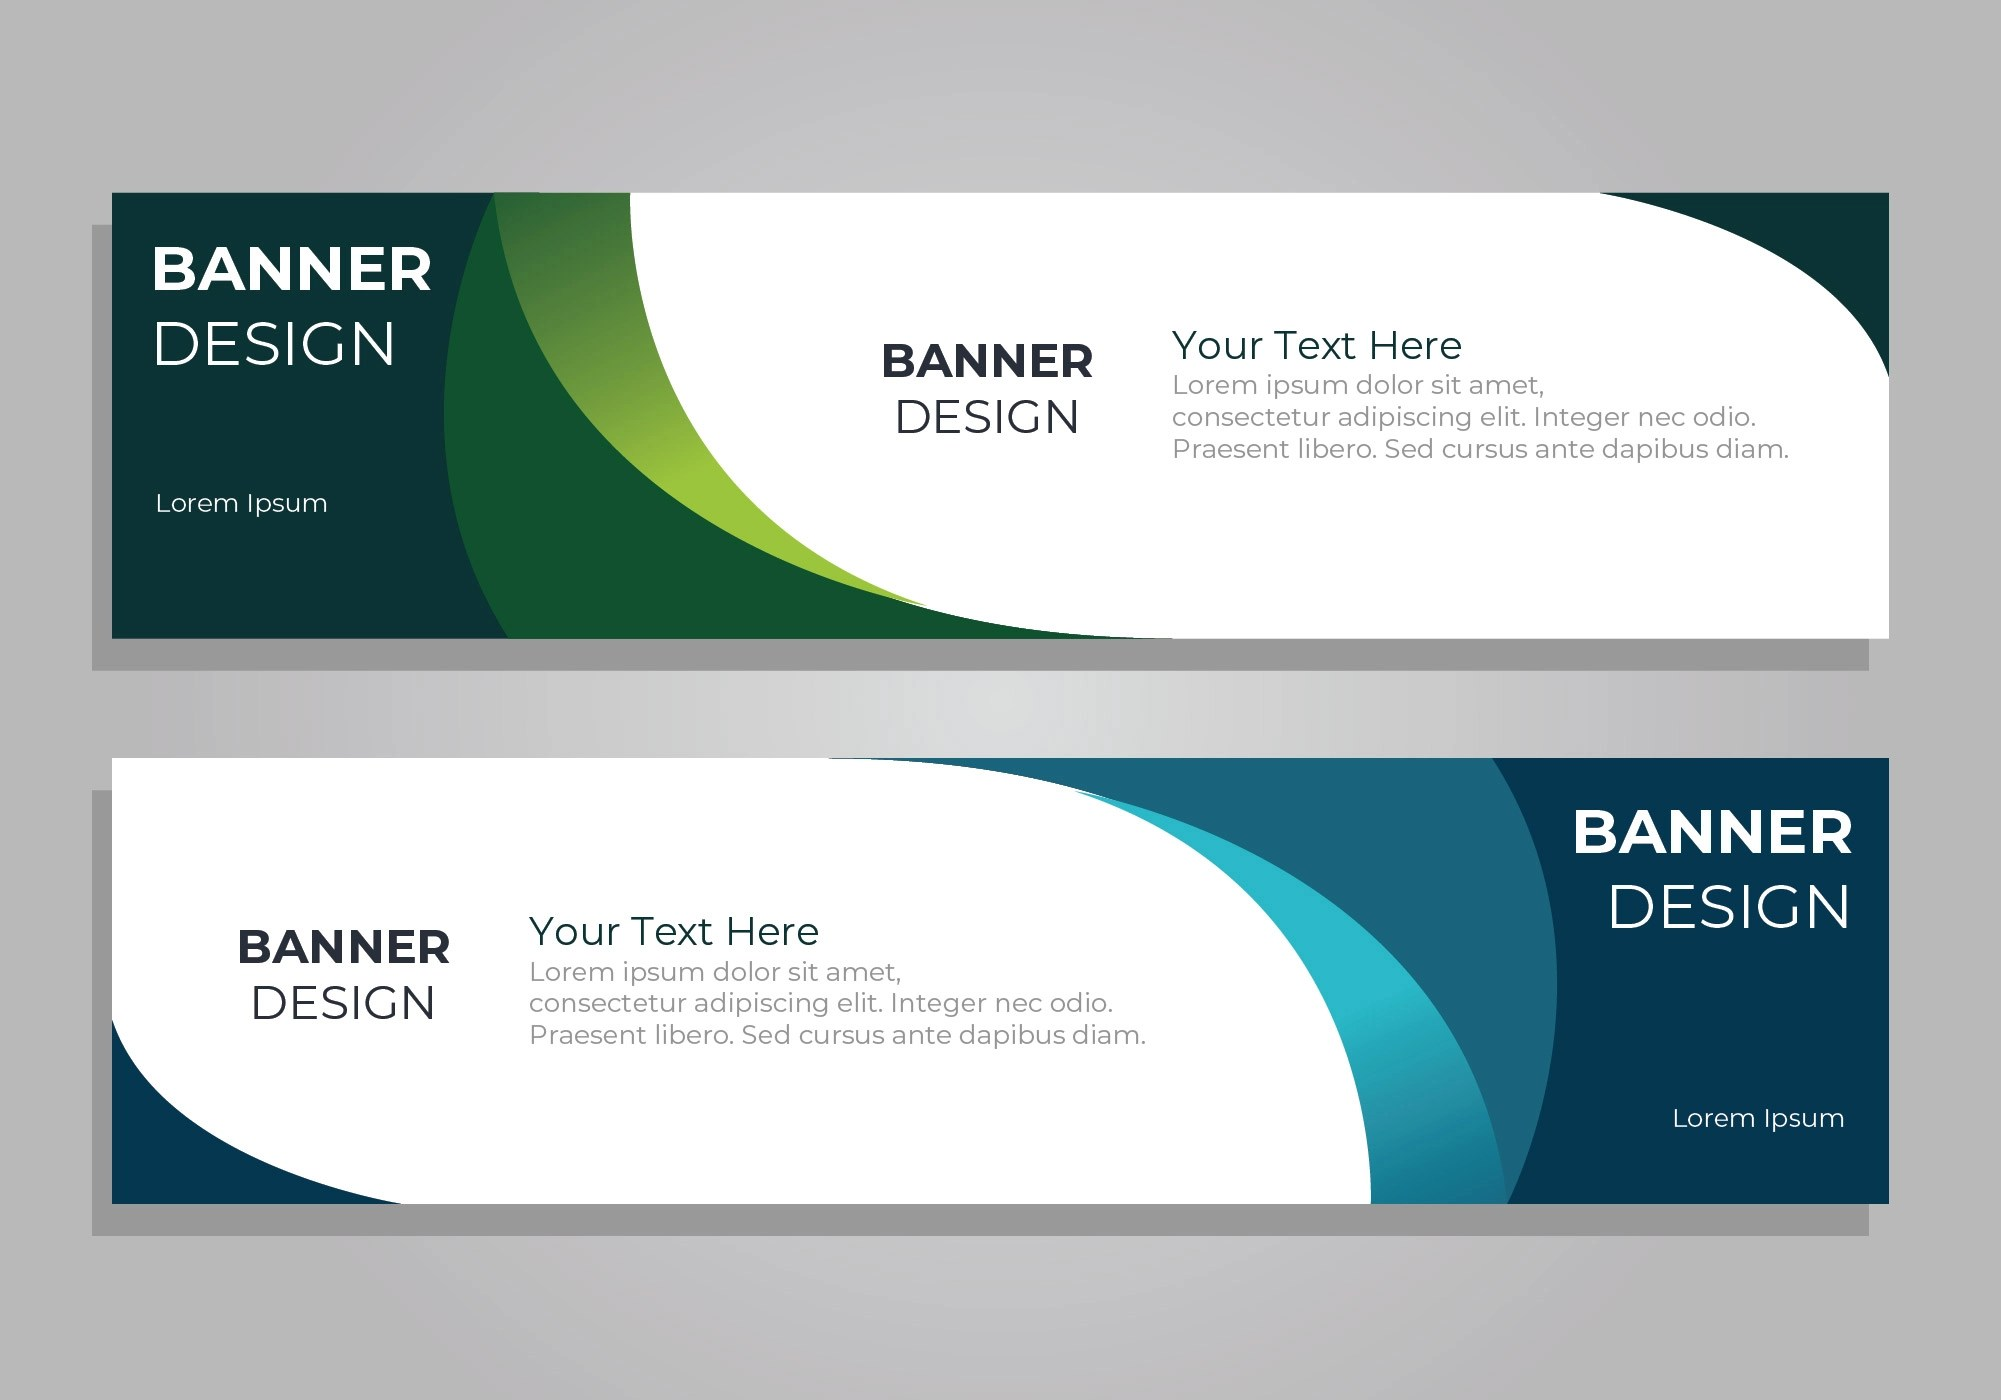 Banner Cdr Free Vector Art 29 828 Free Downloads